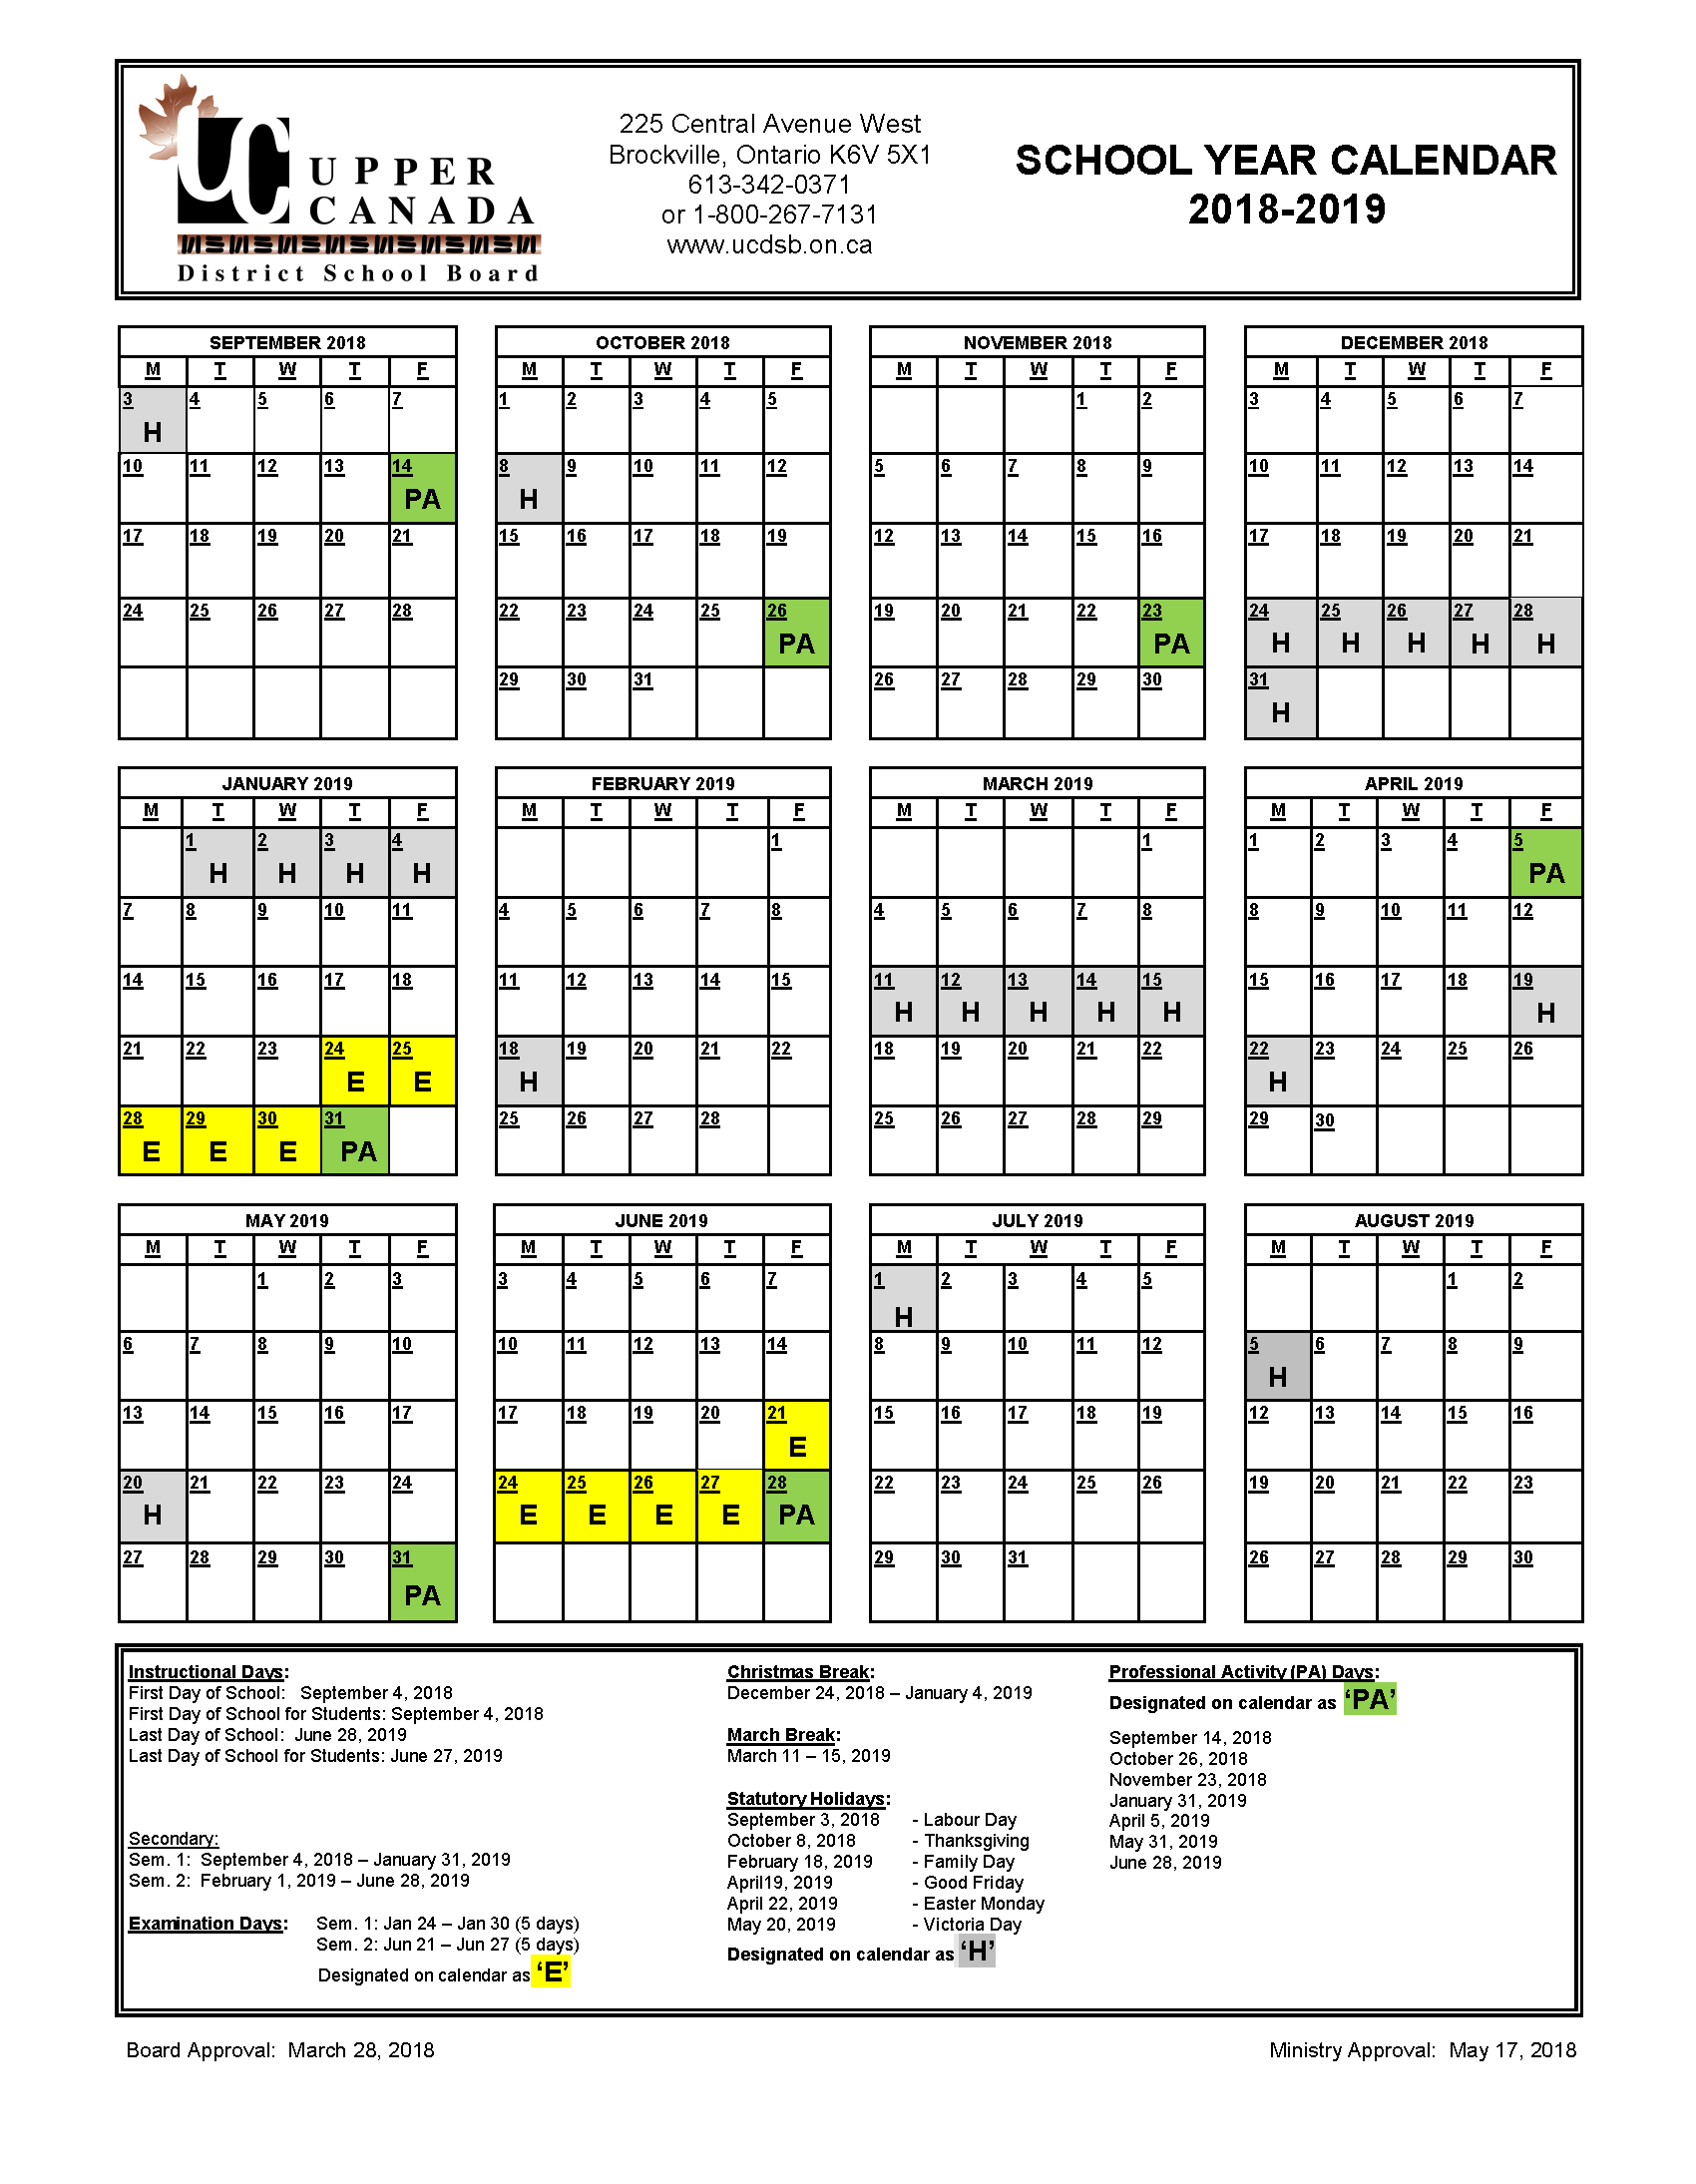 Government Fiscal Year 2019 Calendar With 2018 School Upper Canada District Board